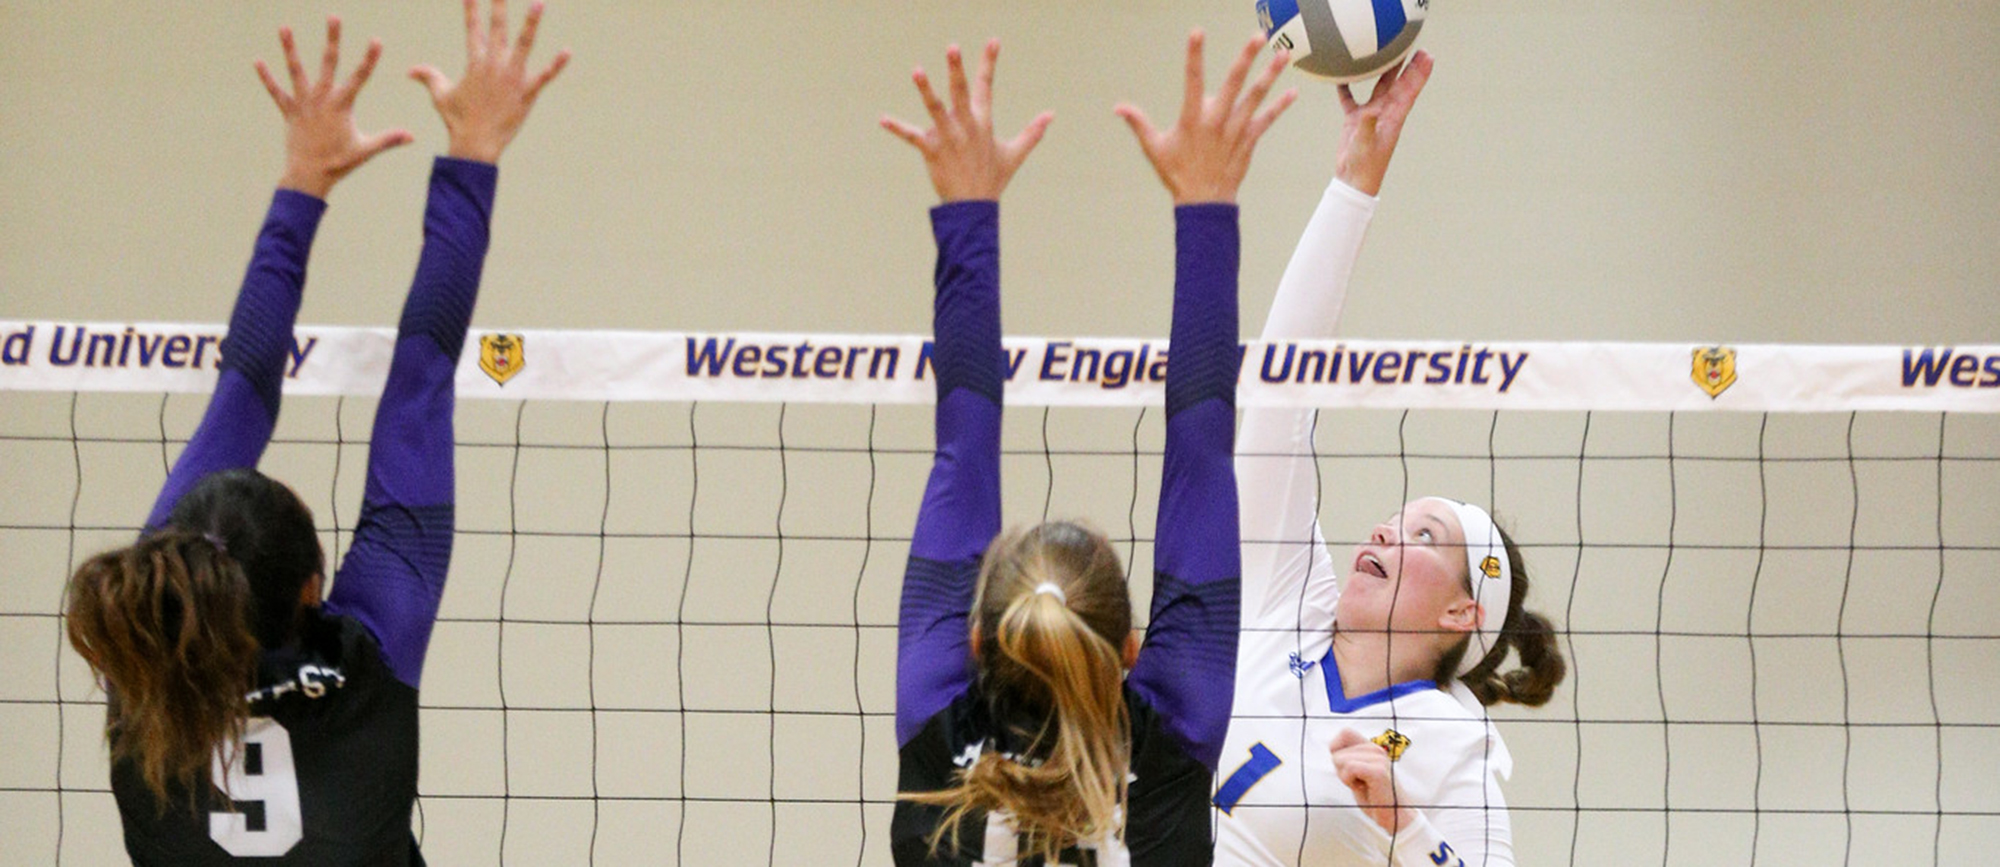 Hailey McDonnell recorded 21 kills on Saturday as Western New England split matches with Norwich and Suffolk. (Photo by Chris Marion)